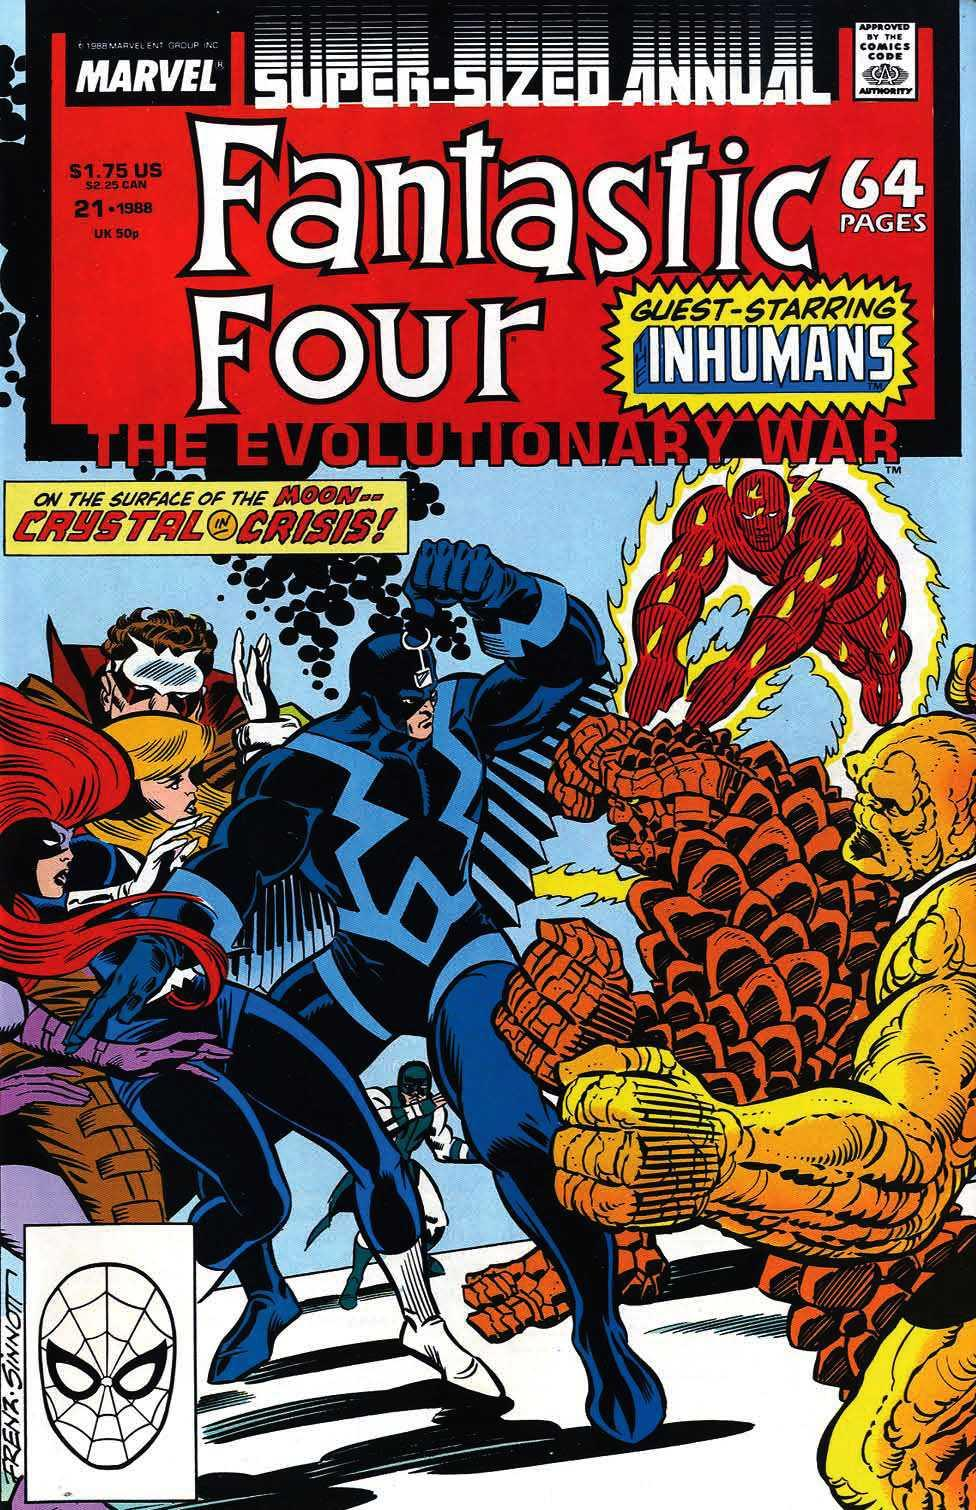 Fantastic Four Vol. 1 #21